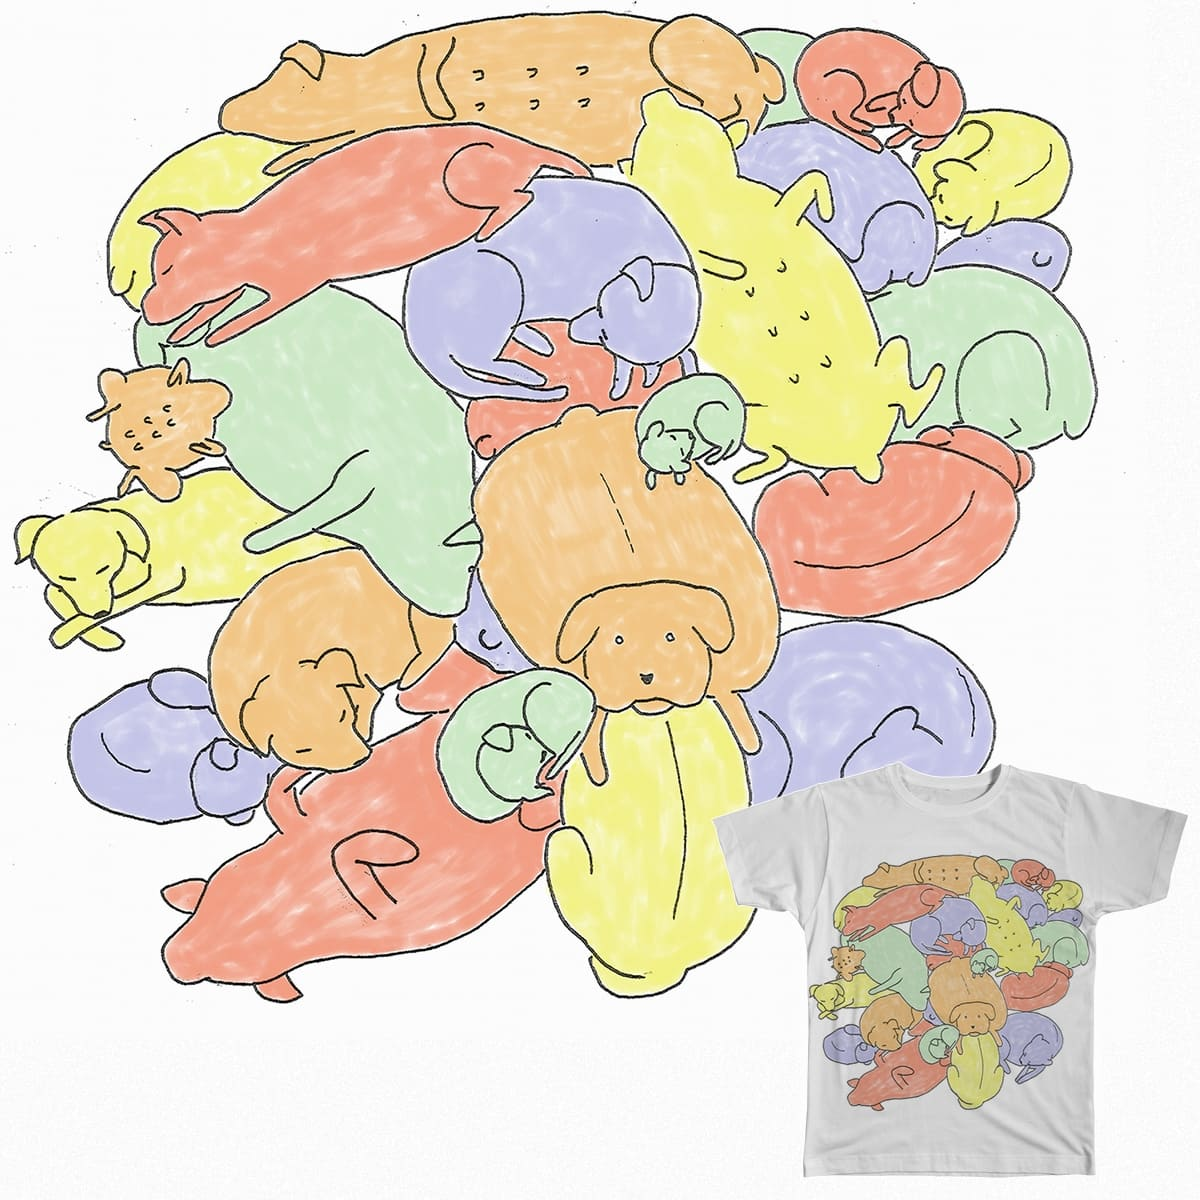 Dog Pile! by PopBang on Threadless